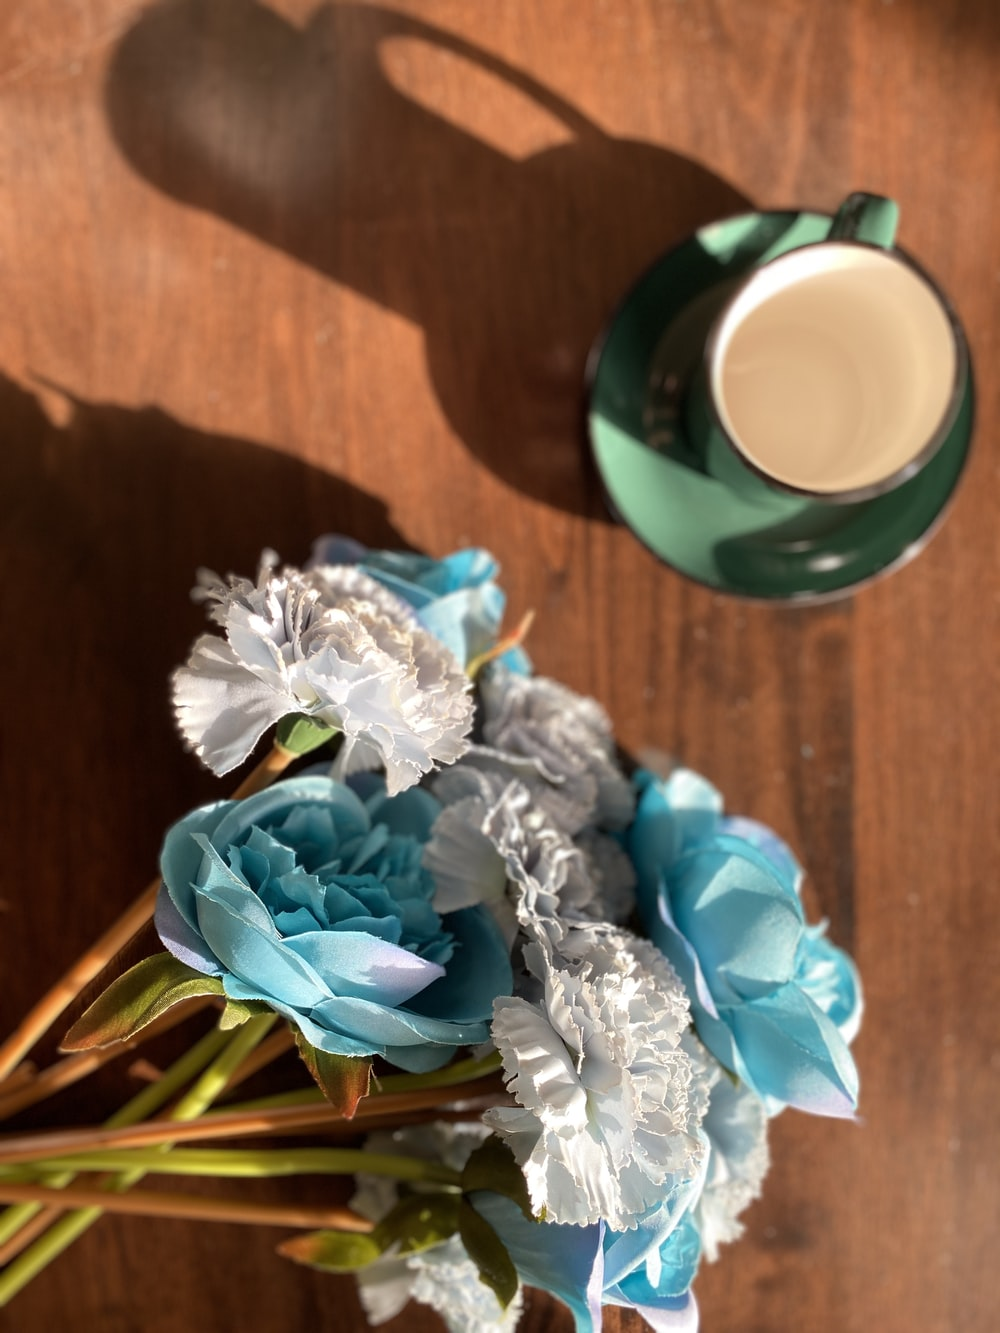 blue and white flower bouquet beside green ceramic mug on brown wooden table